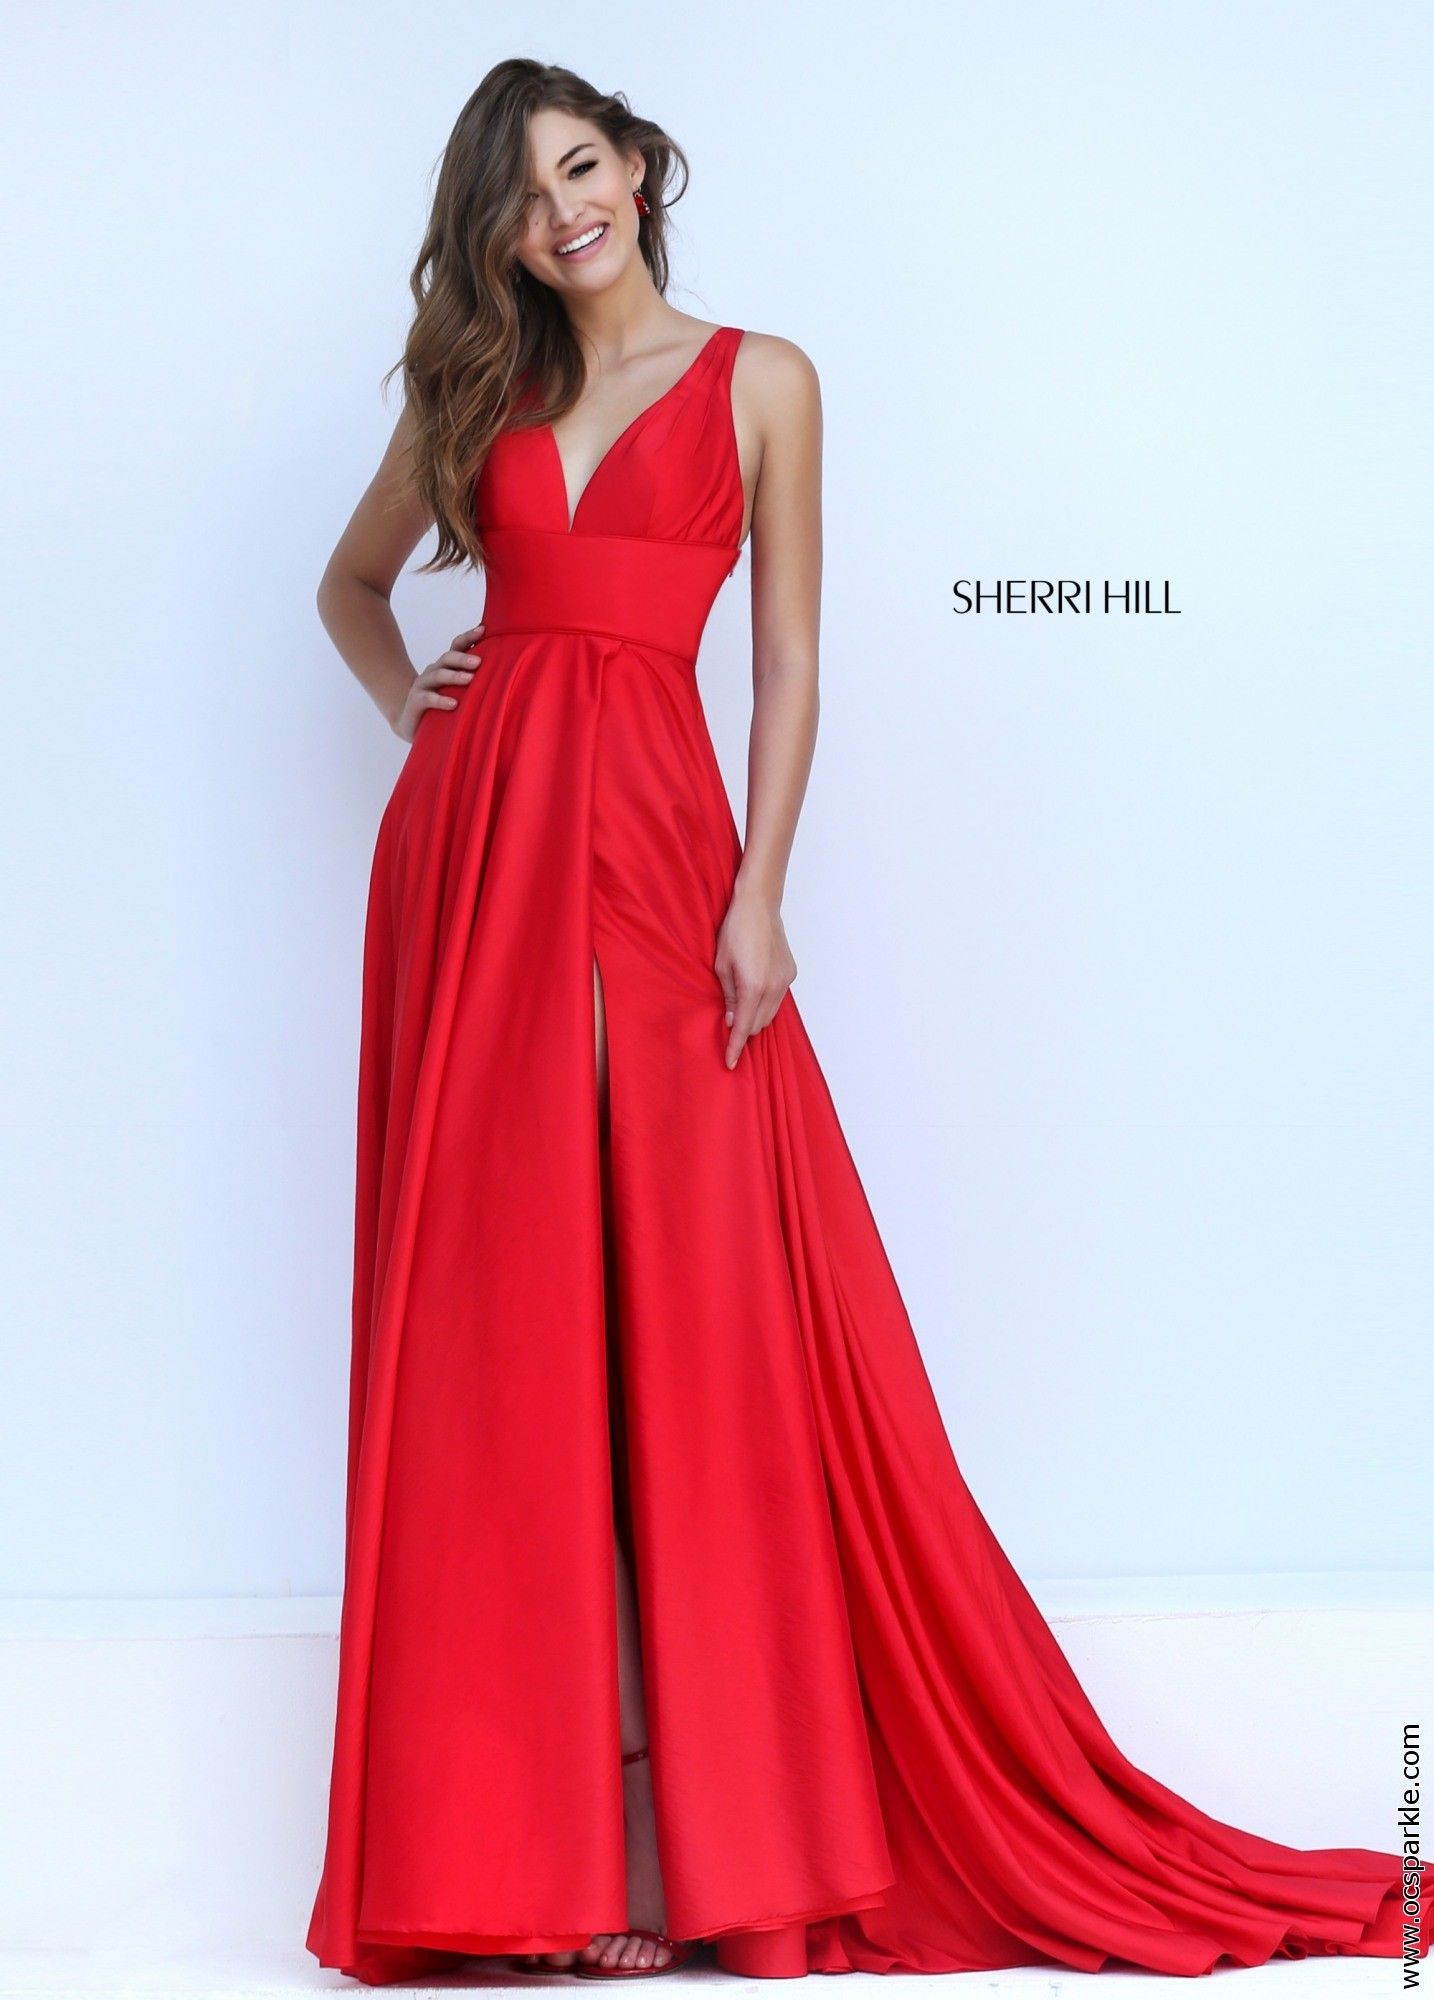 Sherri hill dresses pinterest fashion accessories